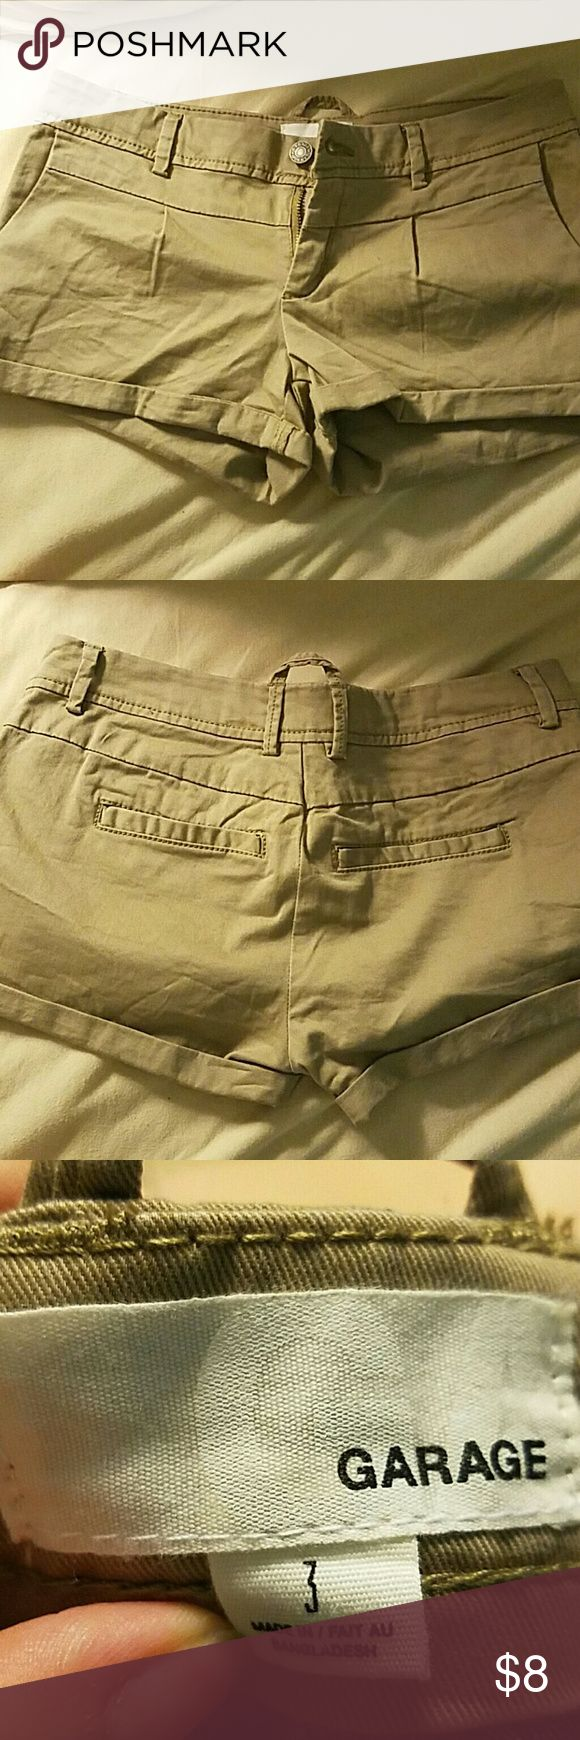 Garage Khaki/brown shorts Never worn! Great condition Garage Shorts